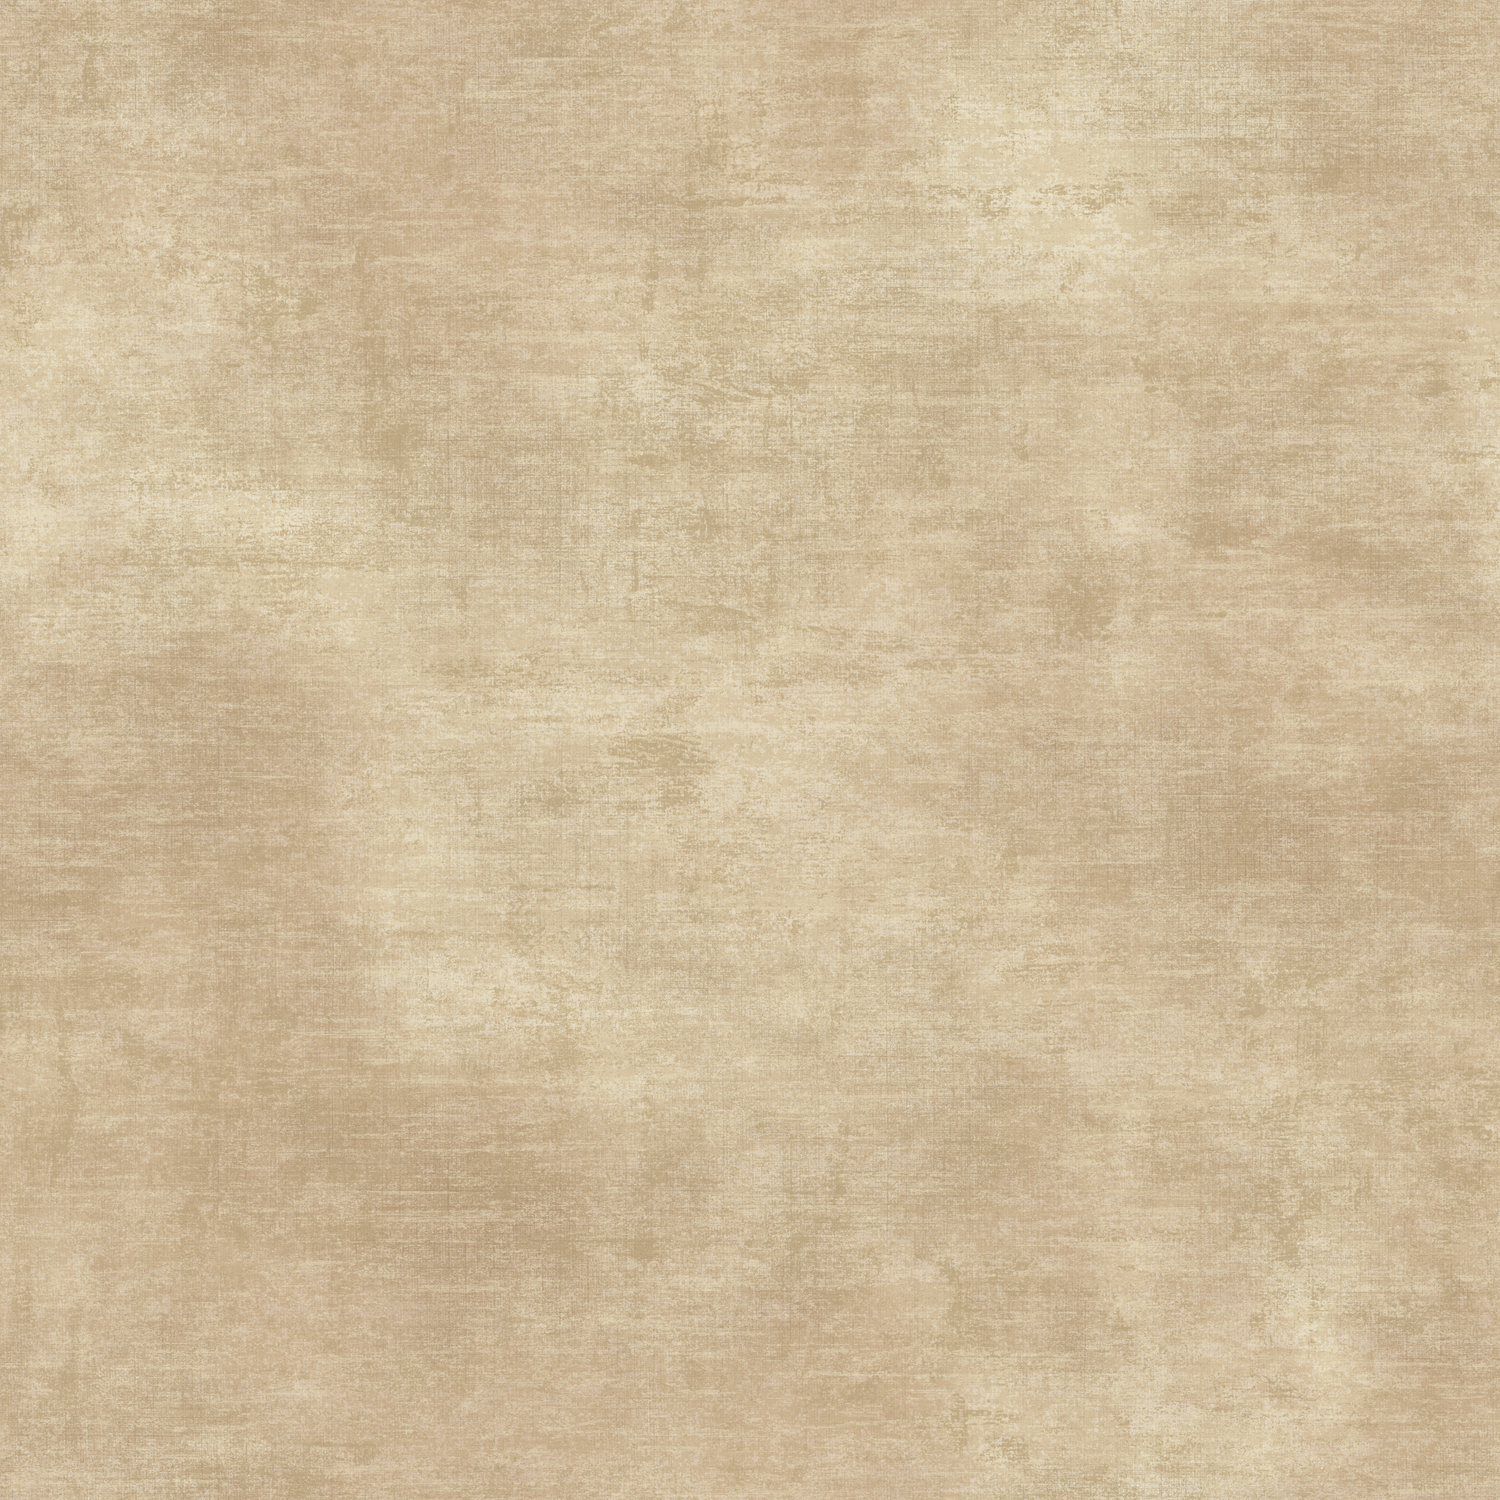 Picture of Asha Sand Lotus Texture Wallpaper